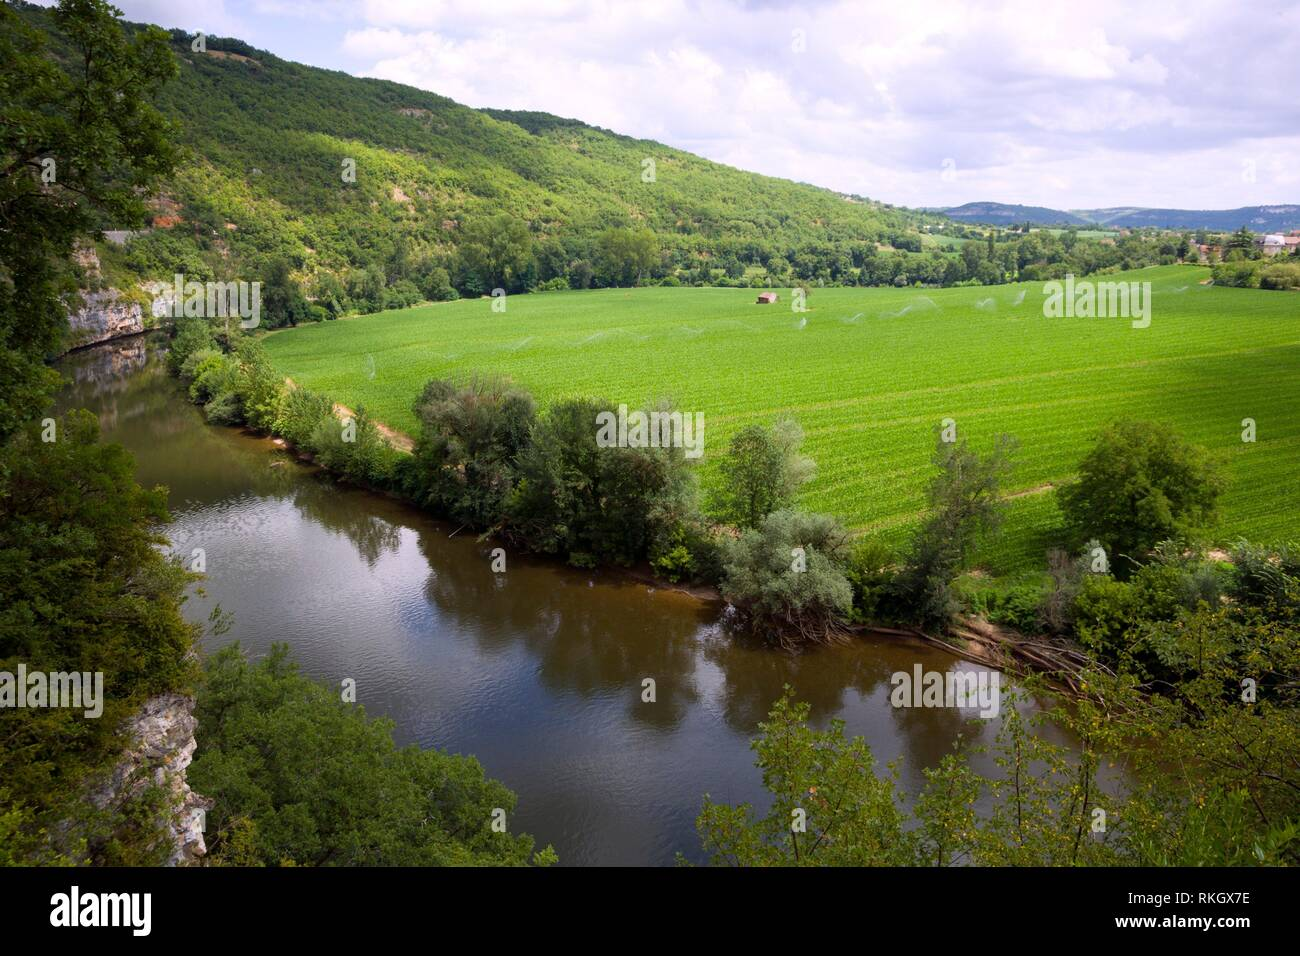 Europe, France, Quercy, Lot, The scenic Lot Valley and river near Cajarc. - Stock Image